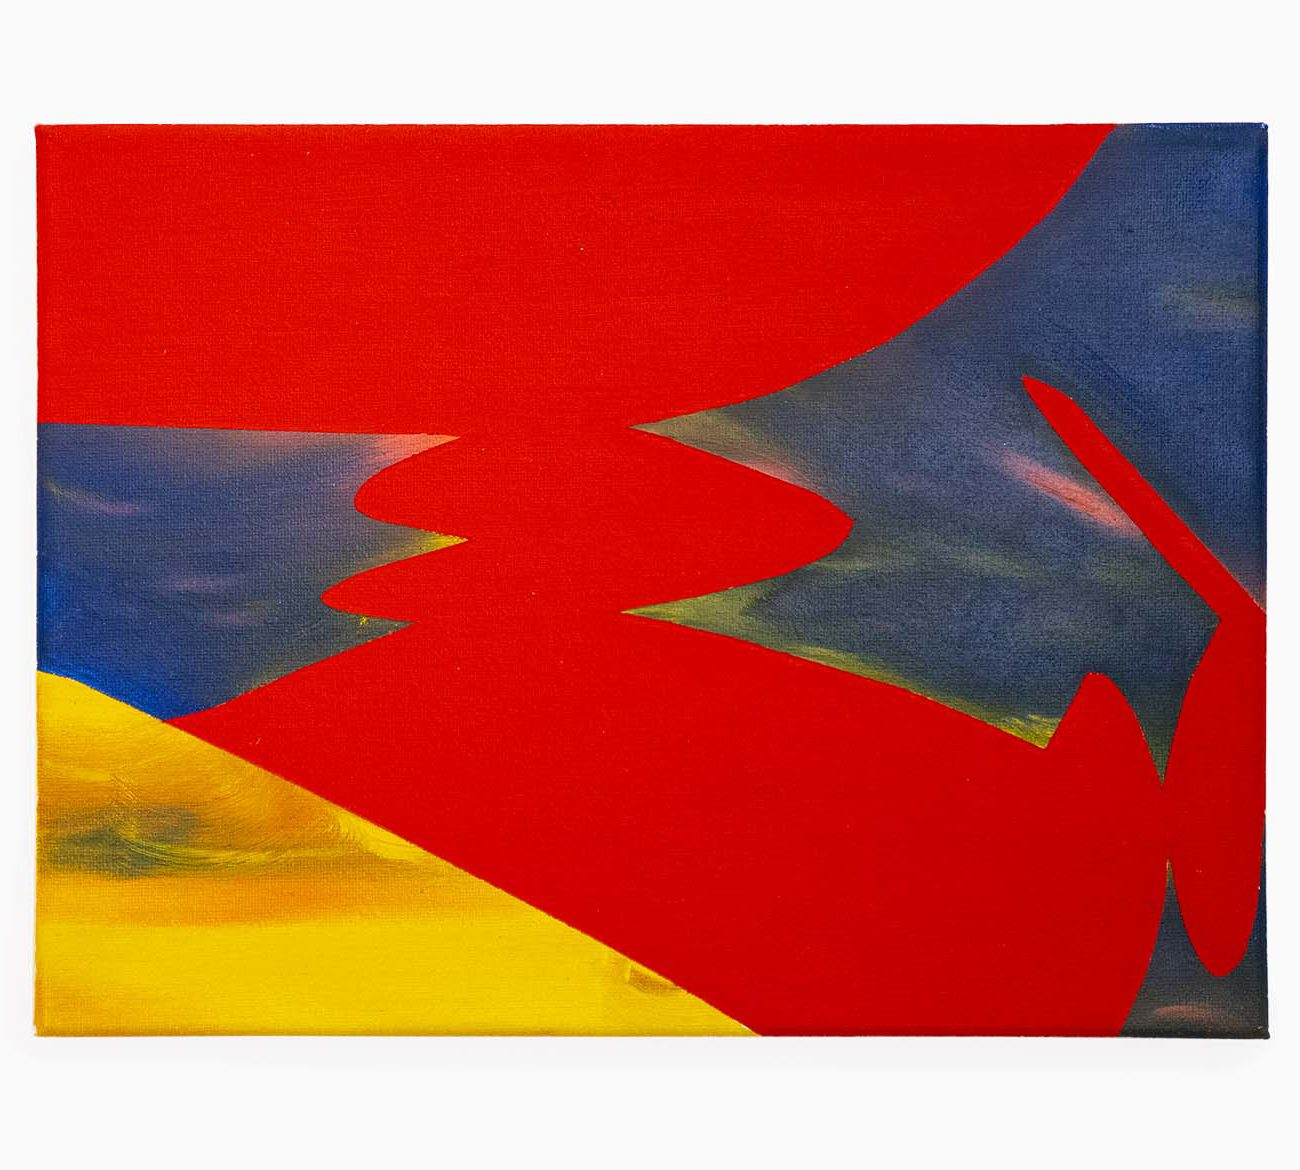 Sun 12 (W) x 9 (H) Inches Oil on Canvas 2020 by 권재나 Jaena Kwon